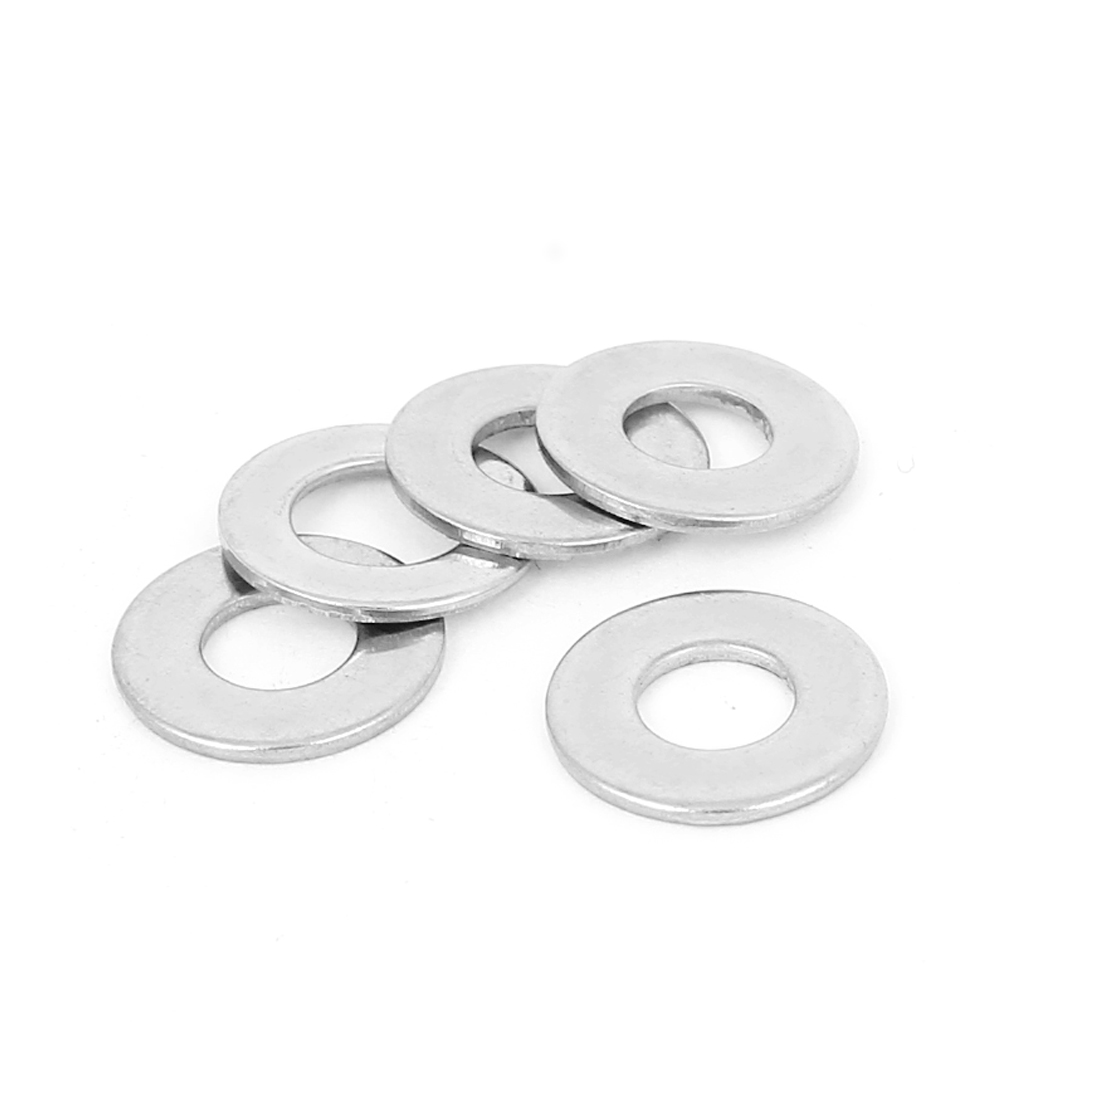 5 Pcs 304 Stainless Steel Flat Washer M6 x 12mm x 1mm for Screws Bolts